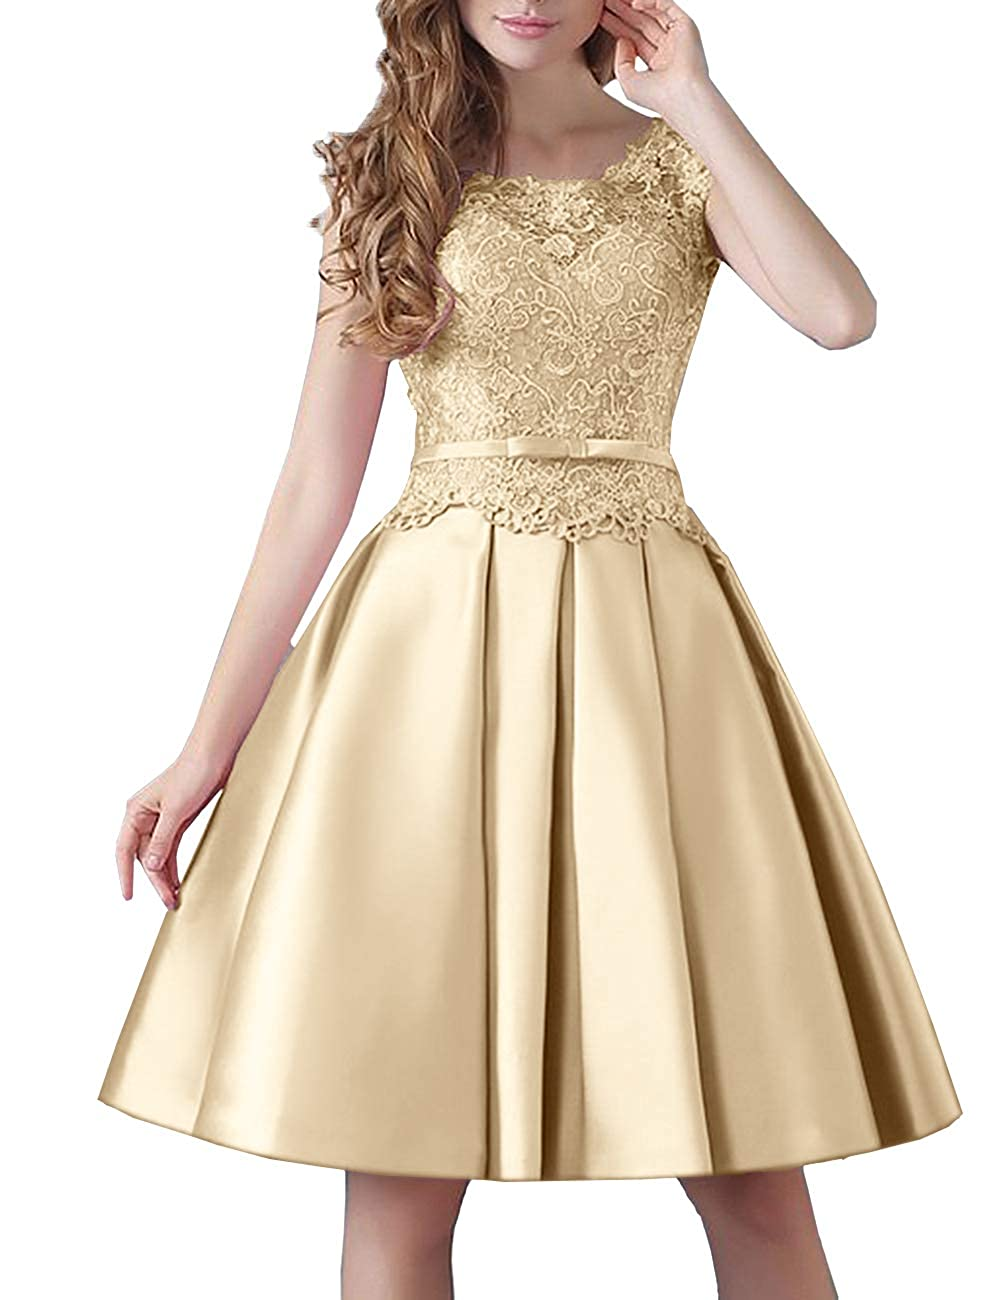 Champagne Uther Prom KneeLength Lace Cocktail Dress Short Stain Homecoming Dresses for Girls